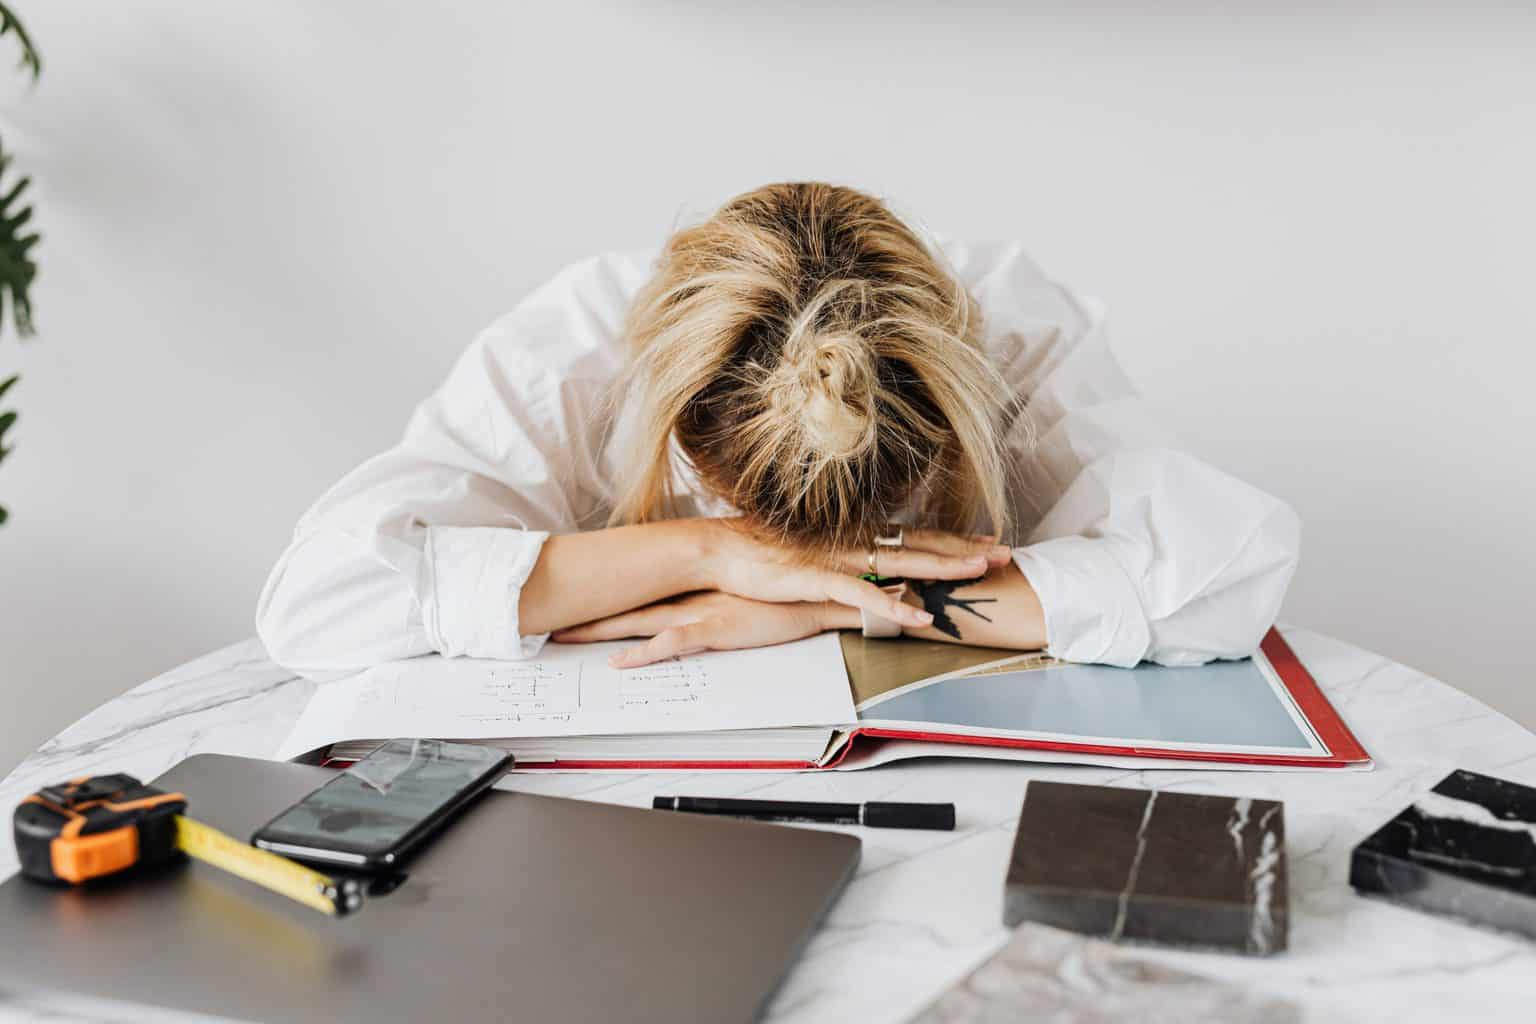 Woman in white robe writing on white paper